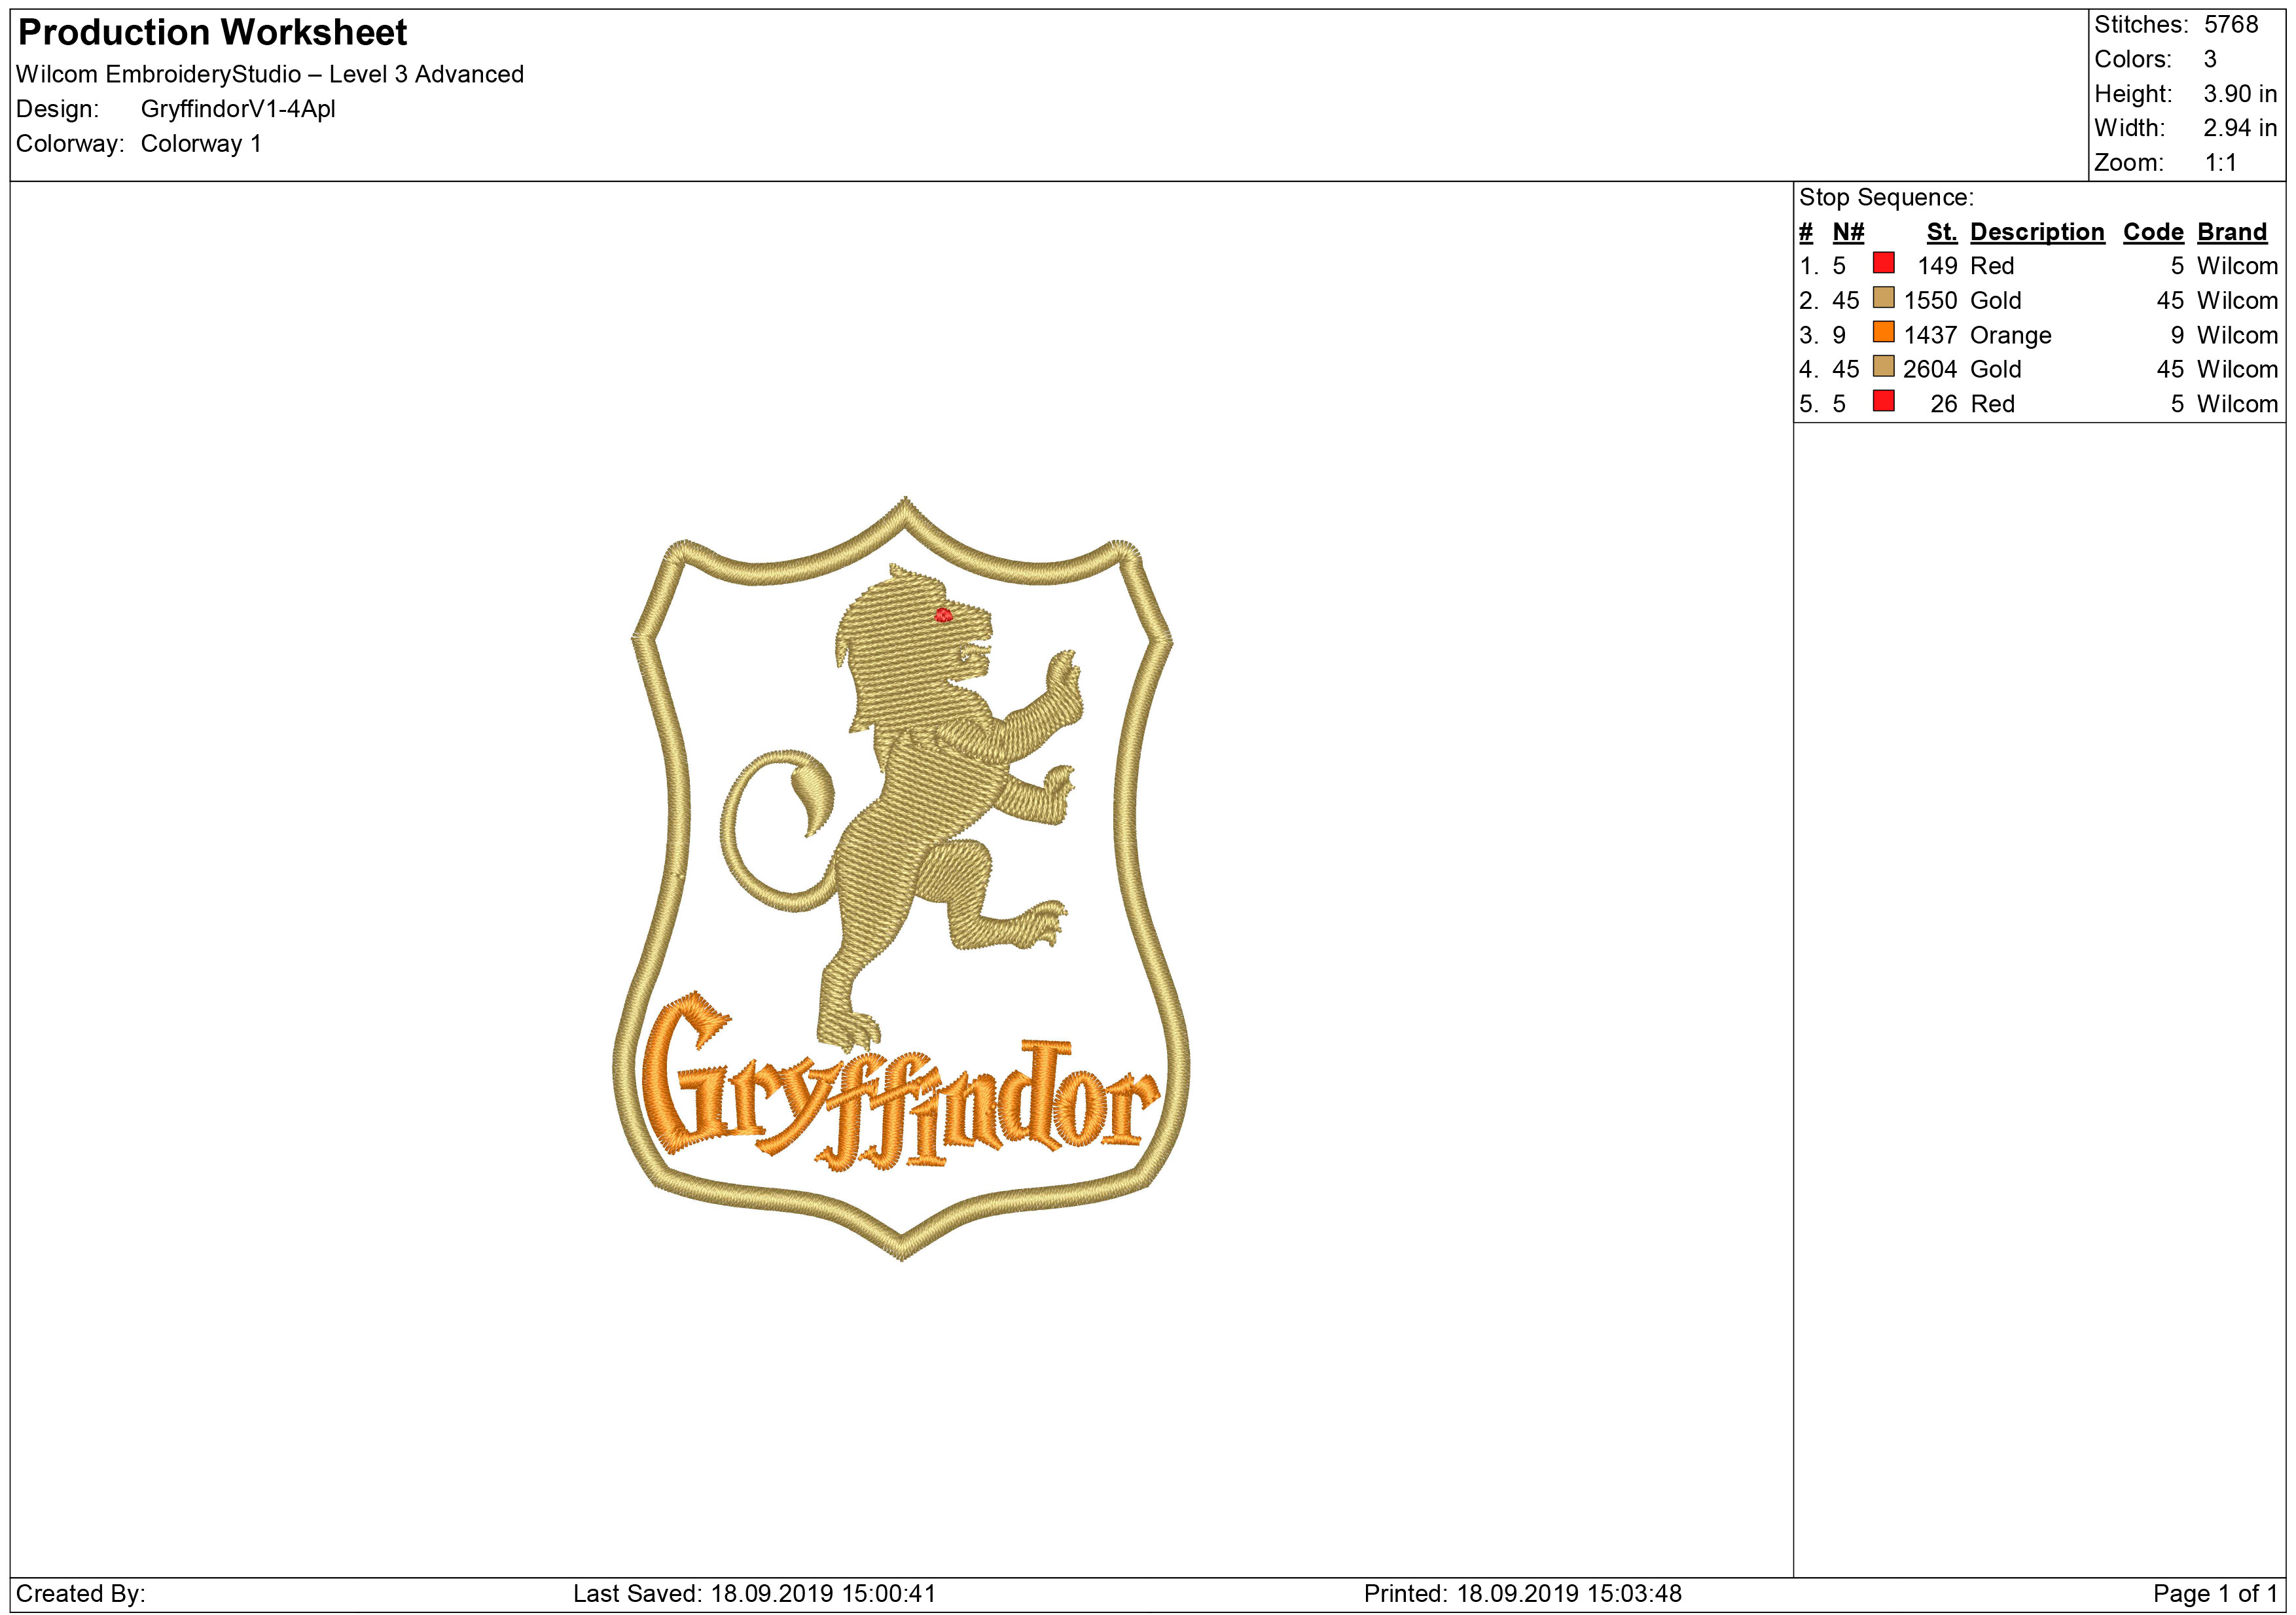 Gryffindor Embroidery